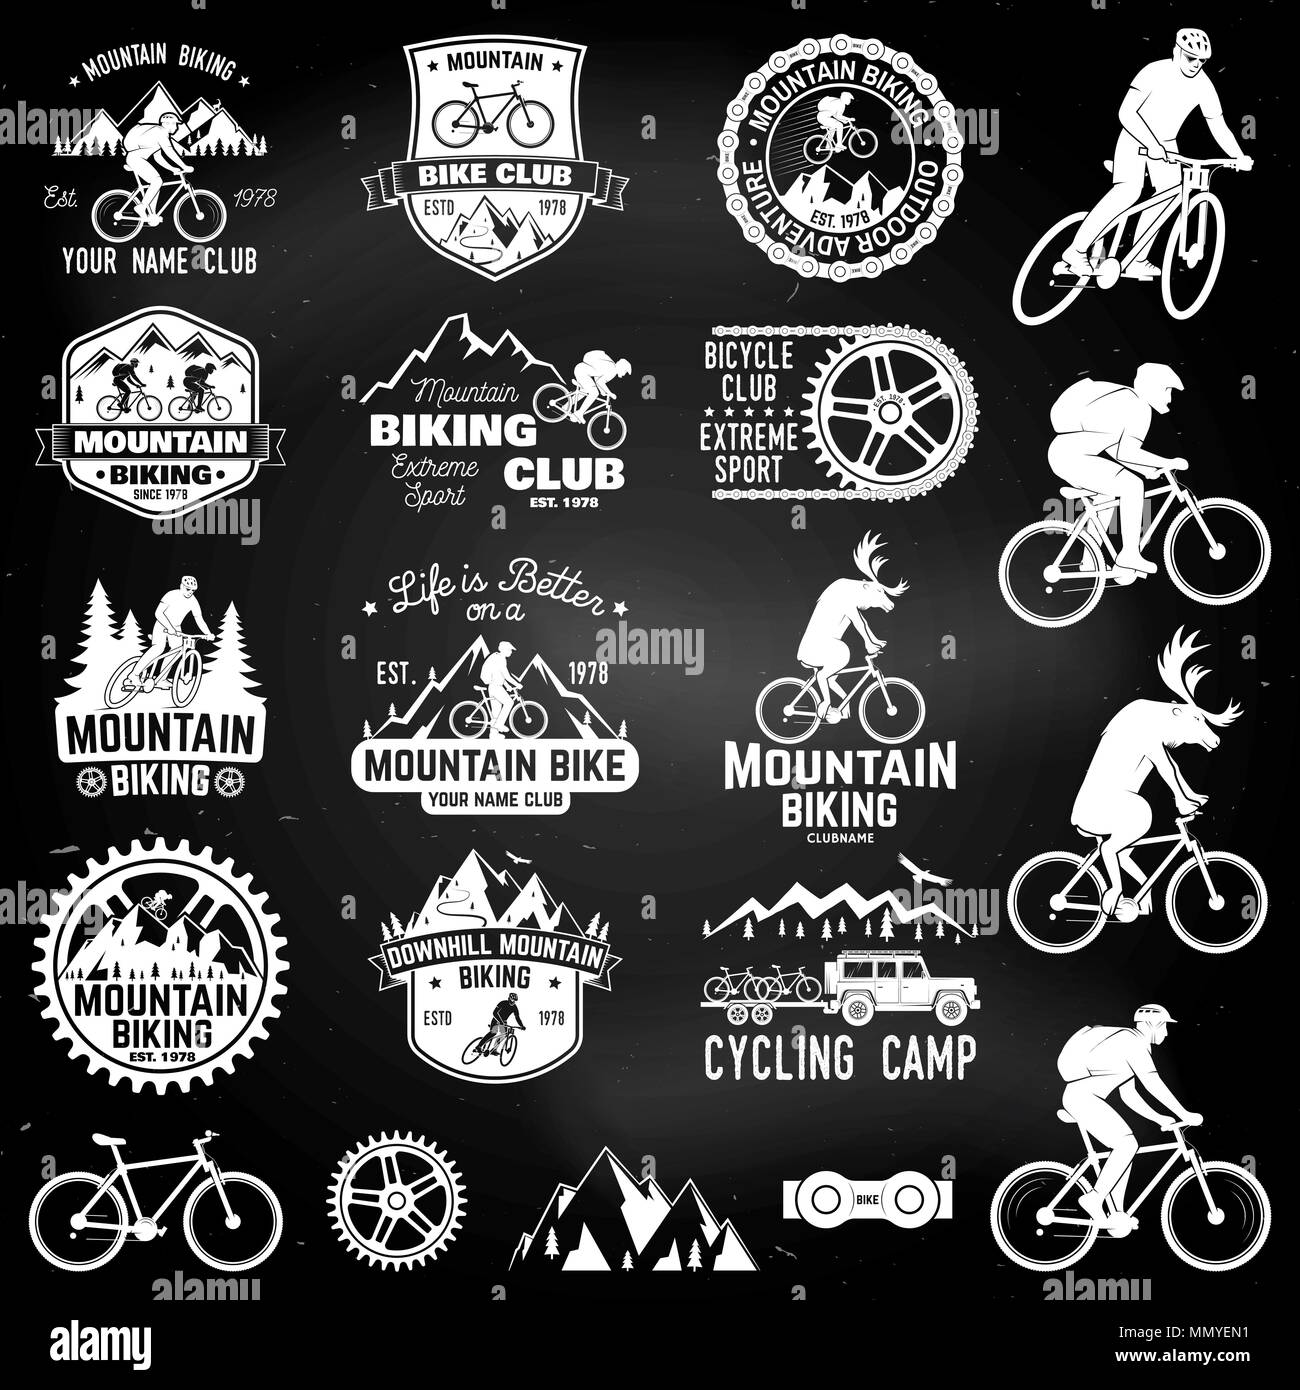 T Shirt Design For Clubs | Satz Von Mountain Bike Clubs Sammlung Vector Illustration Konzept